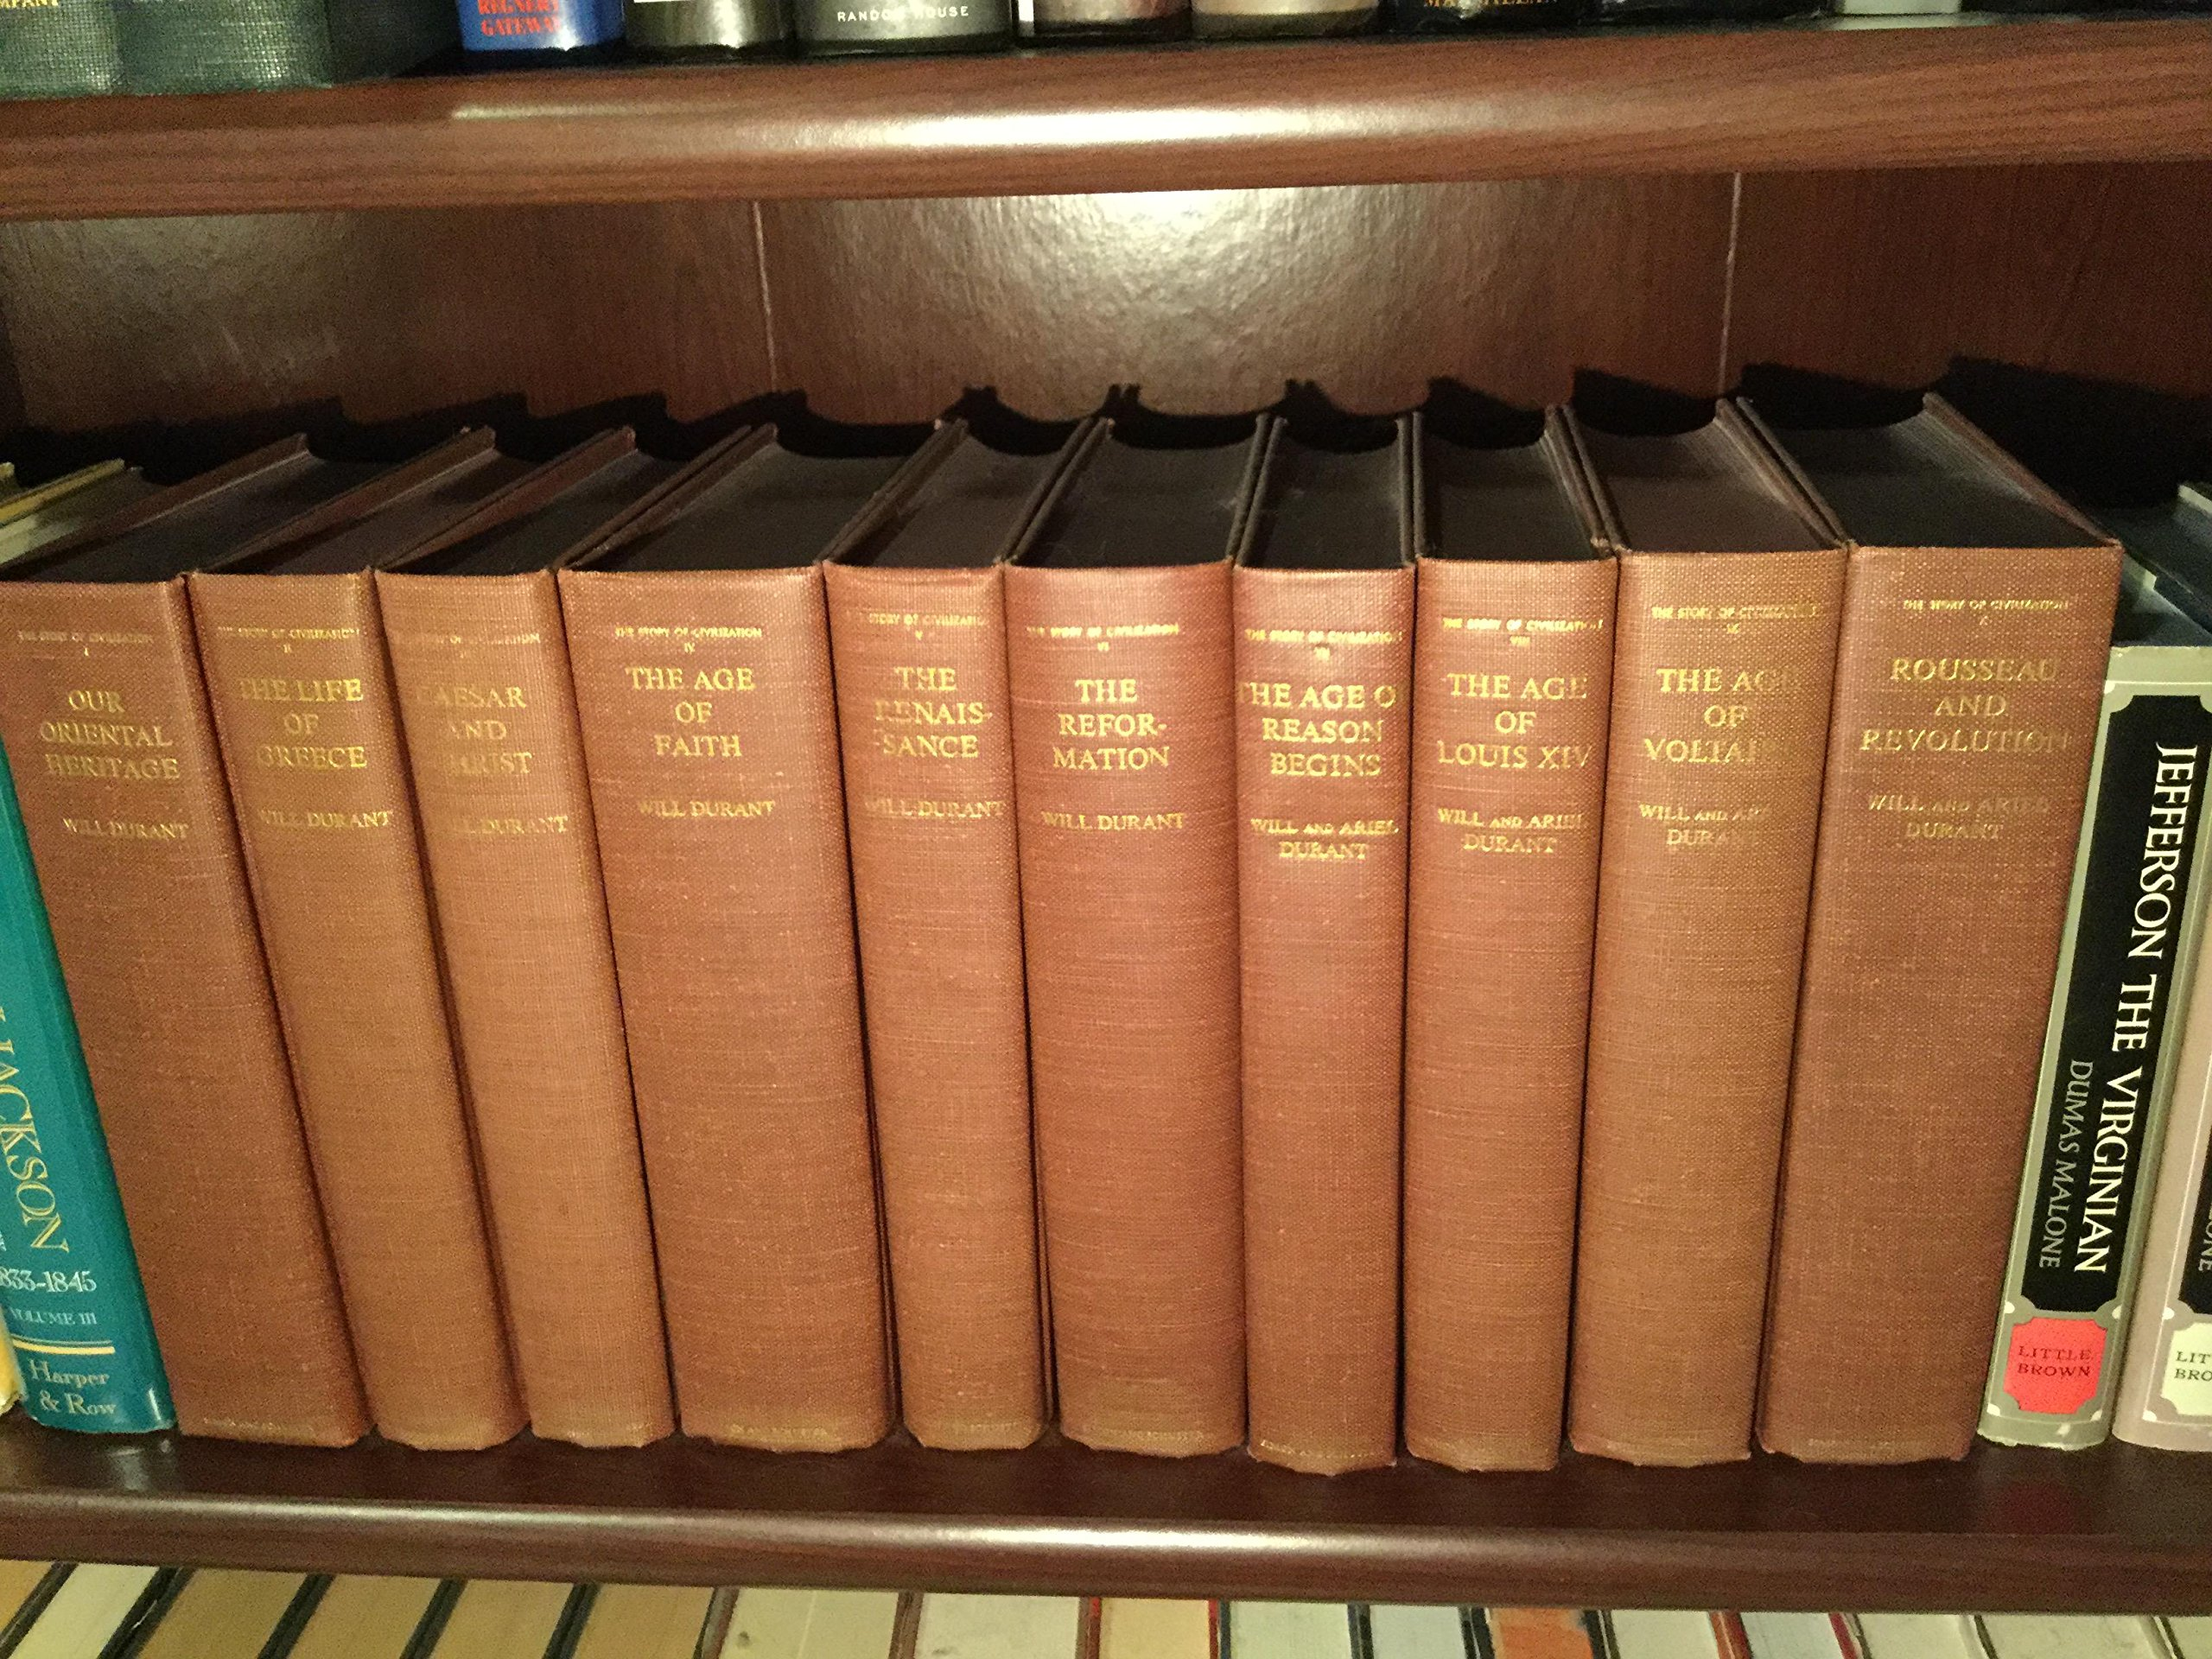 The Story of Civilization [Volumes 1 to 11] (Hardcover Set 1963-1975)